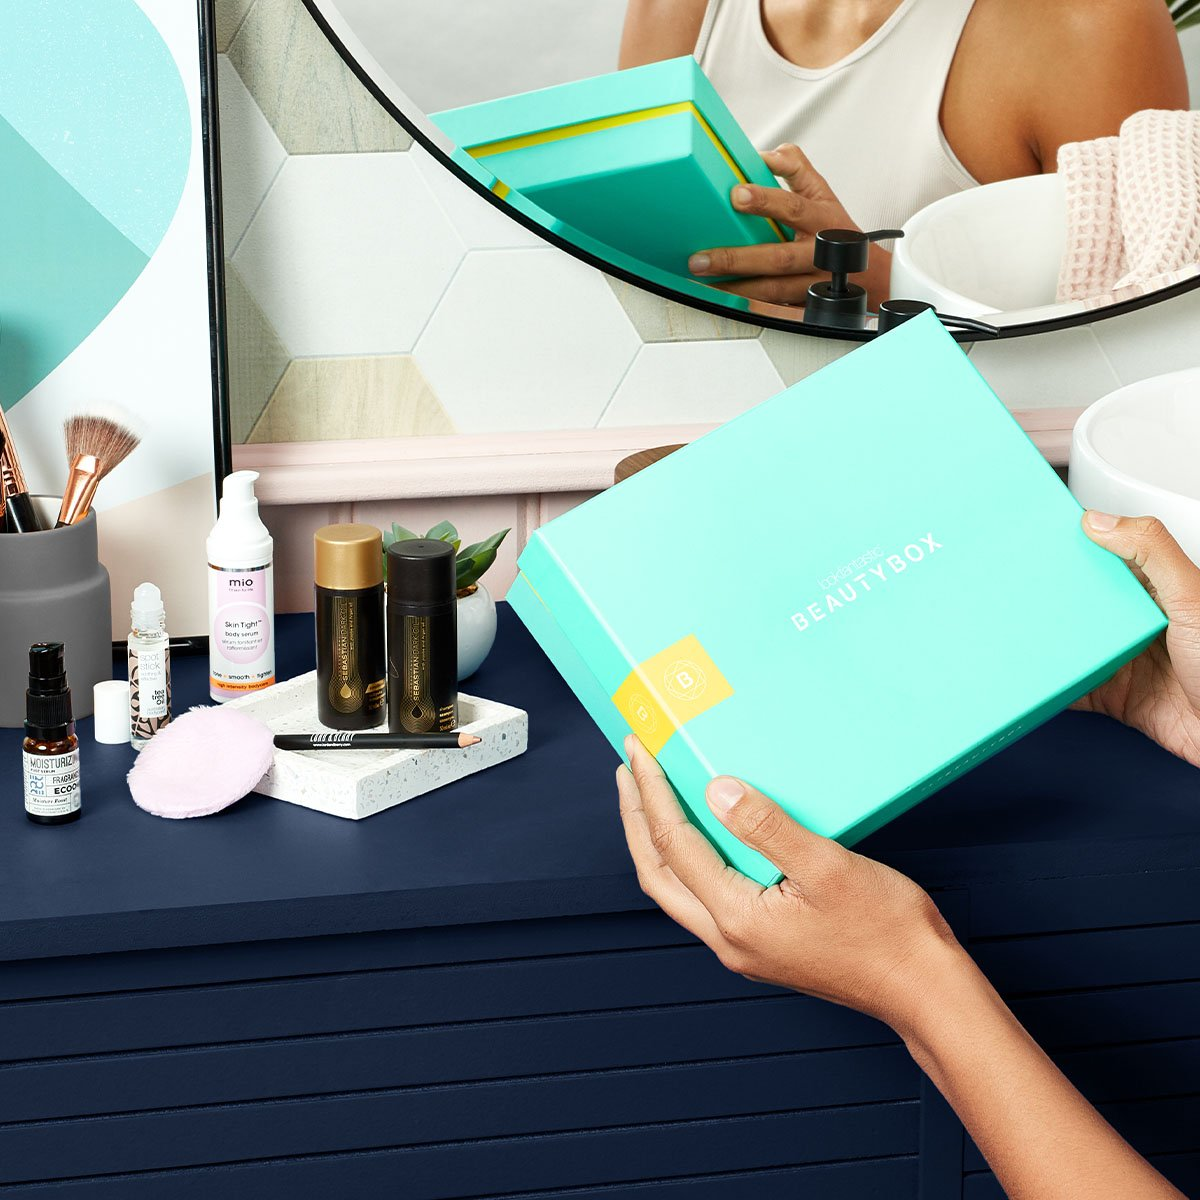 New year, new you? Discover the refreshed lookfantastic January Beauty Box